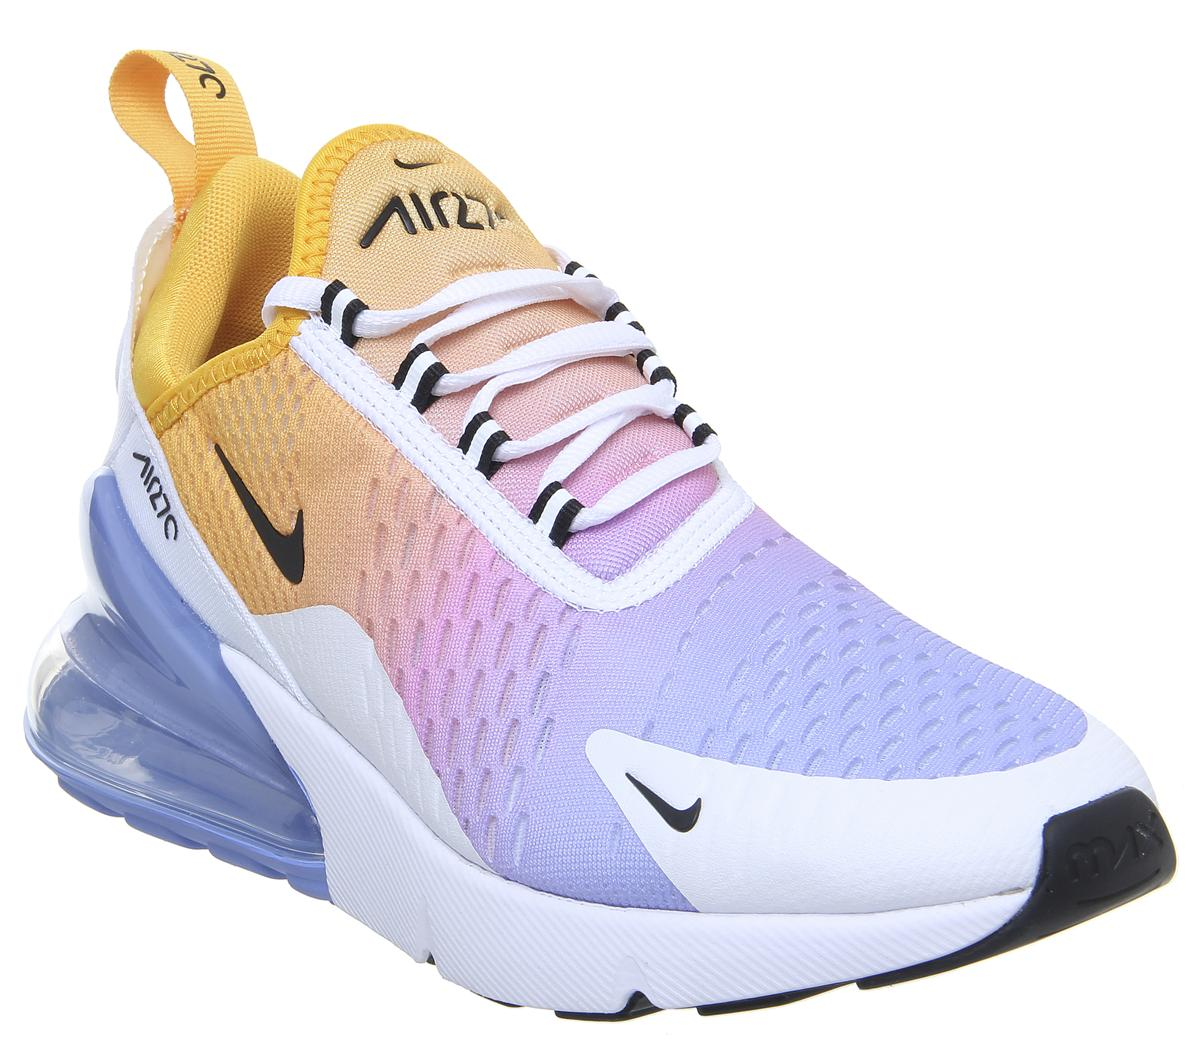 Nike Air Max 270 Trainers University Gold Black University